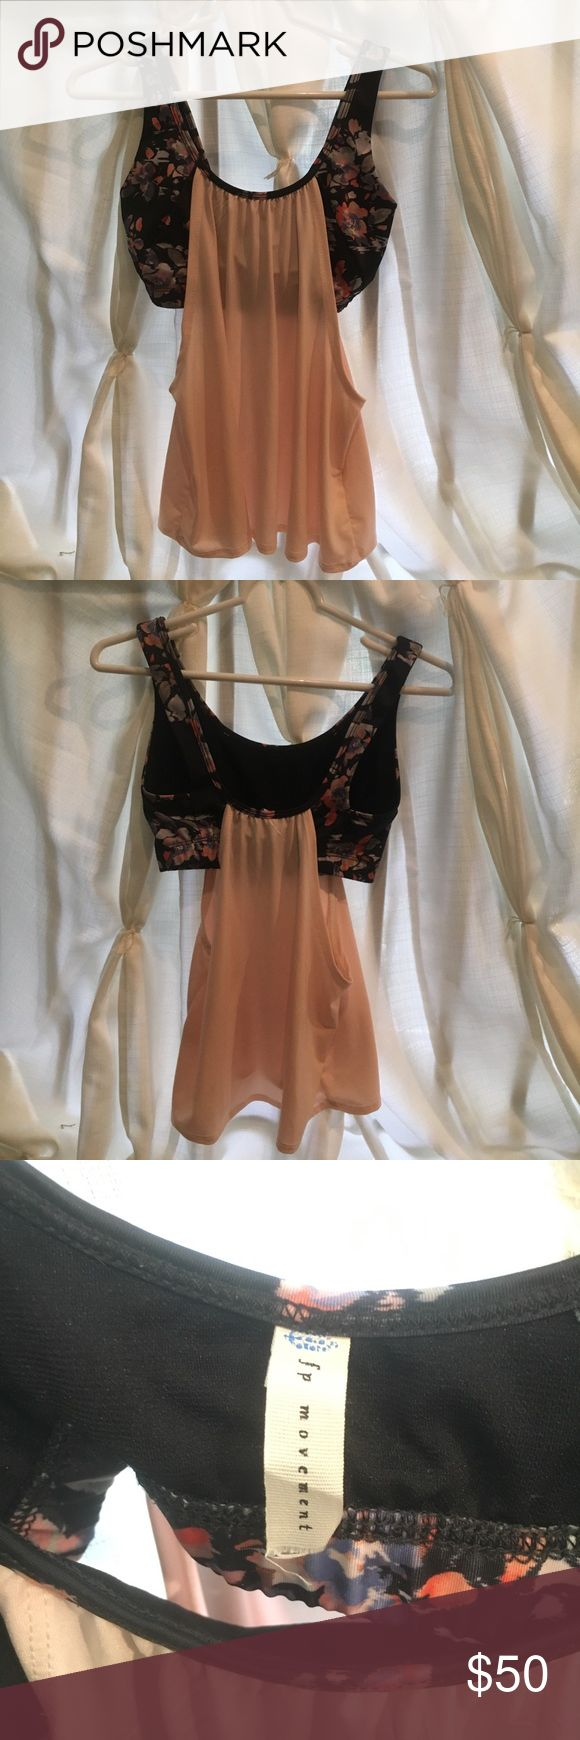 Free People Movement Top Pretty floral sports bra with flowy light pink overlay. Excellent barely used condition. 🌺 This one's a beauty, especially for Springtime! FP size S/M Free People Tops